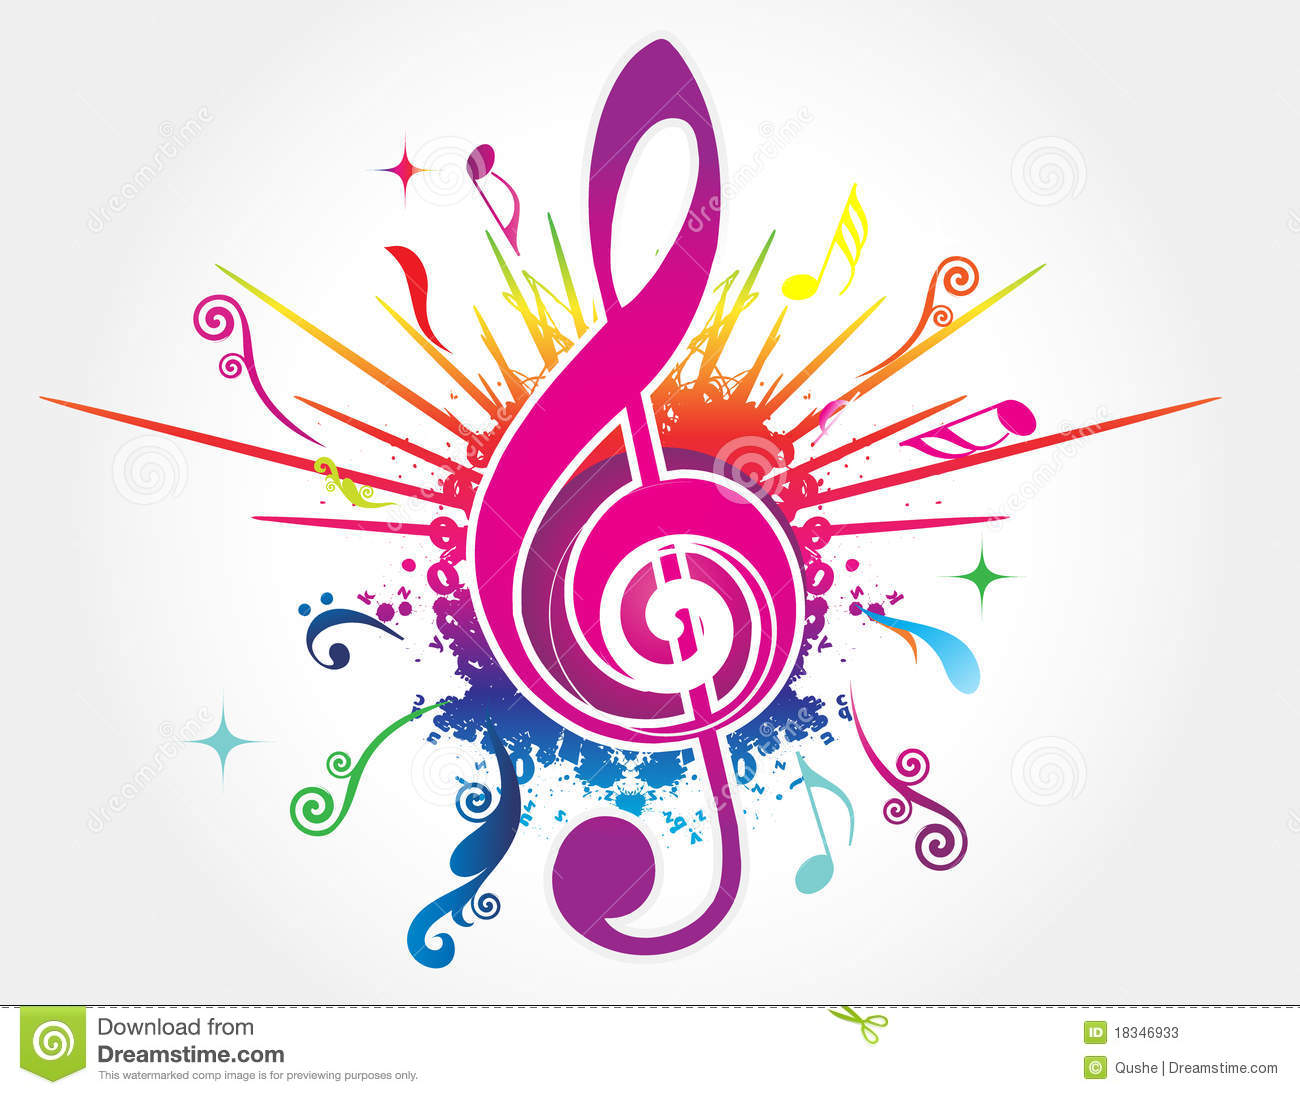 Colorful music background stock vector. Illustration of ...